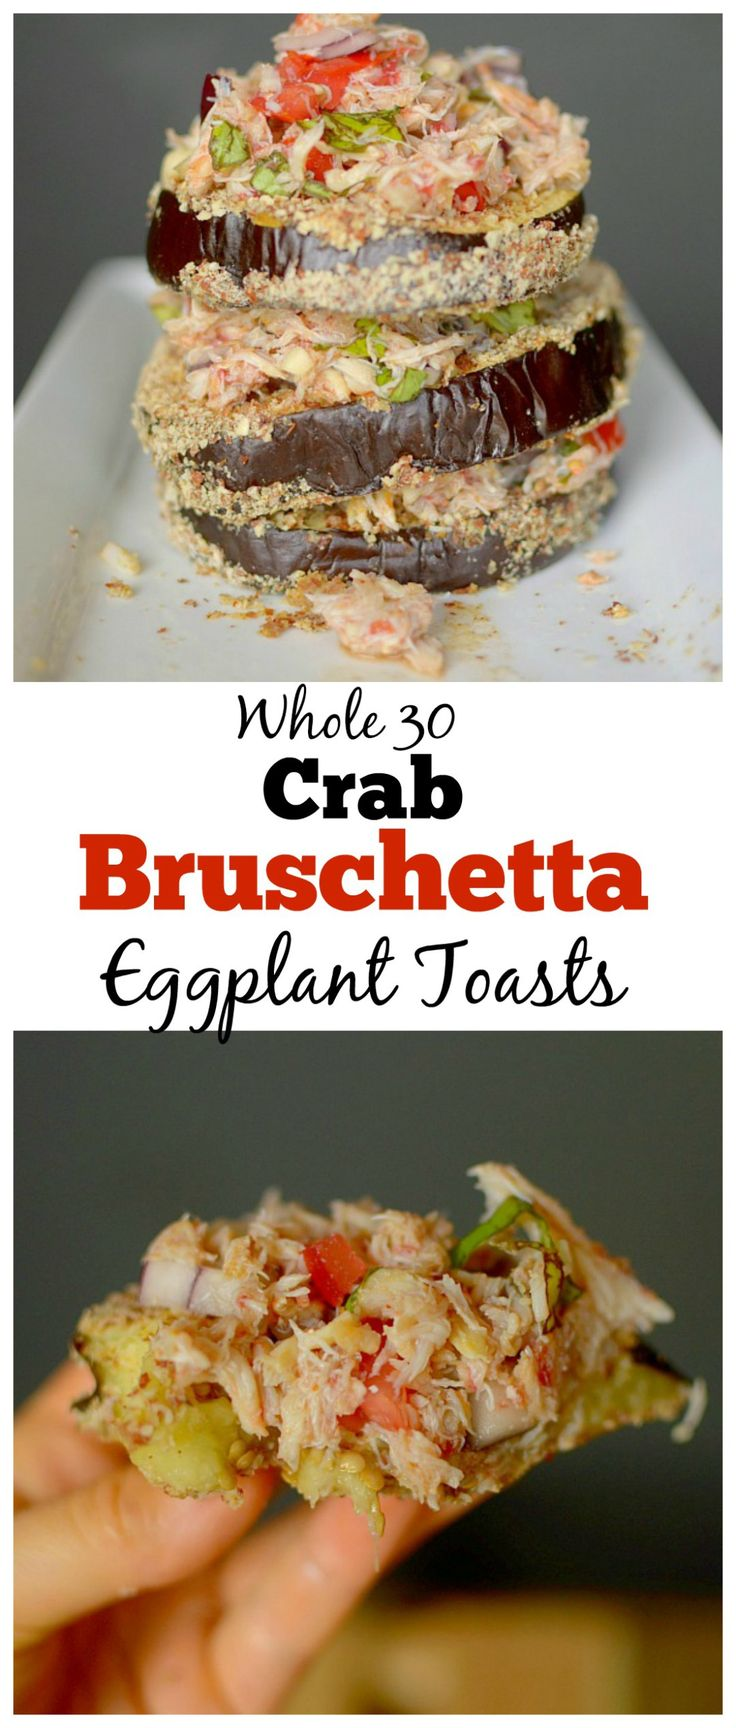 Need a crowd-pleasing appetizer? Make these Crab Bruschetta Eggplant Toasts…